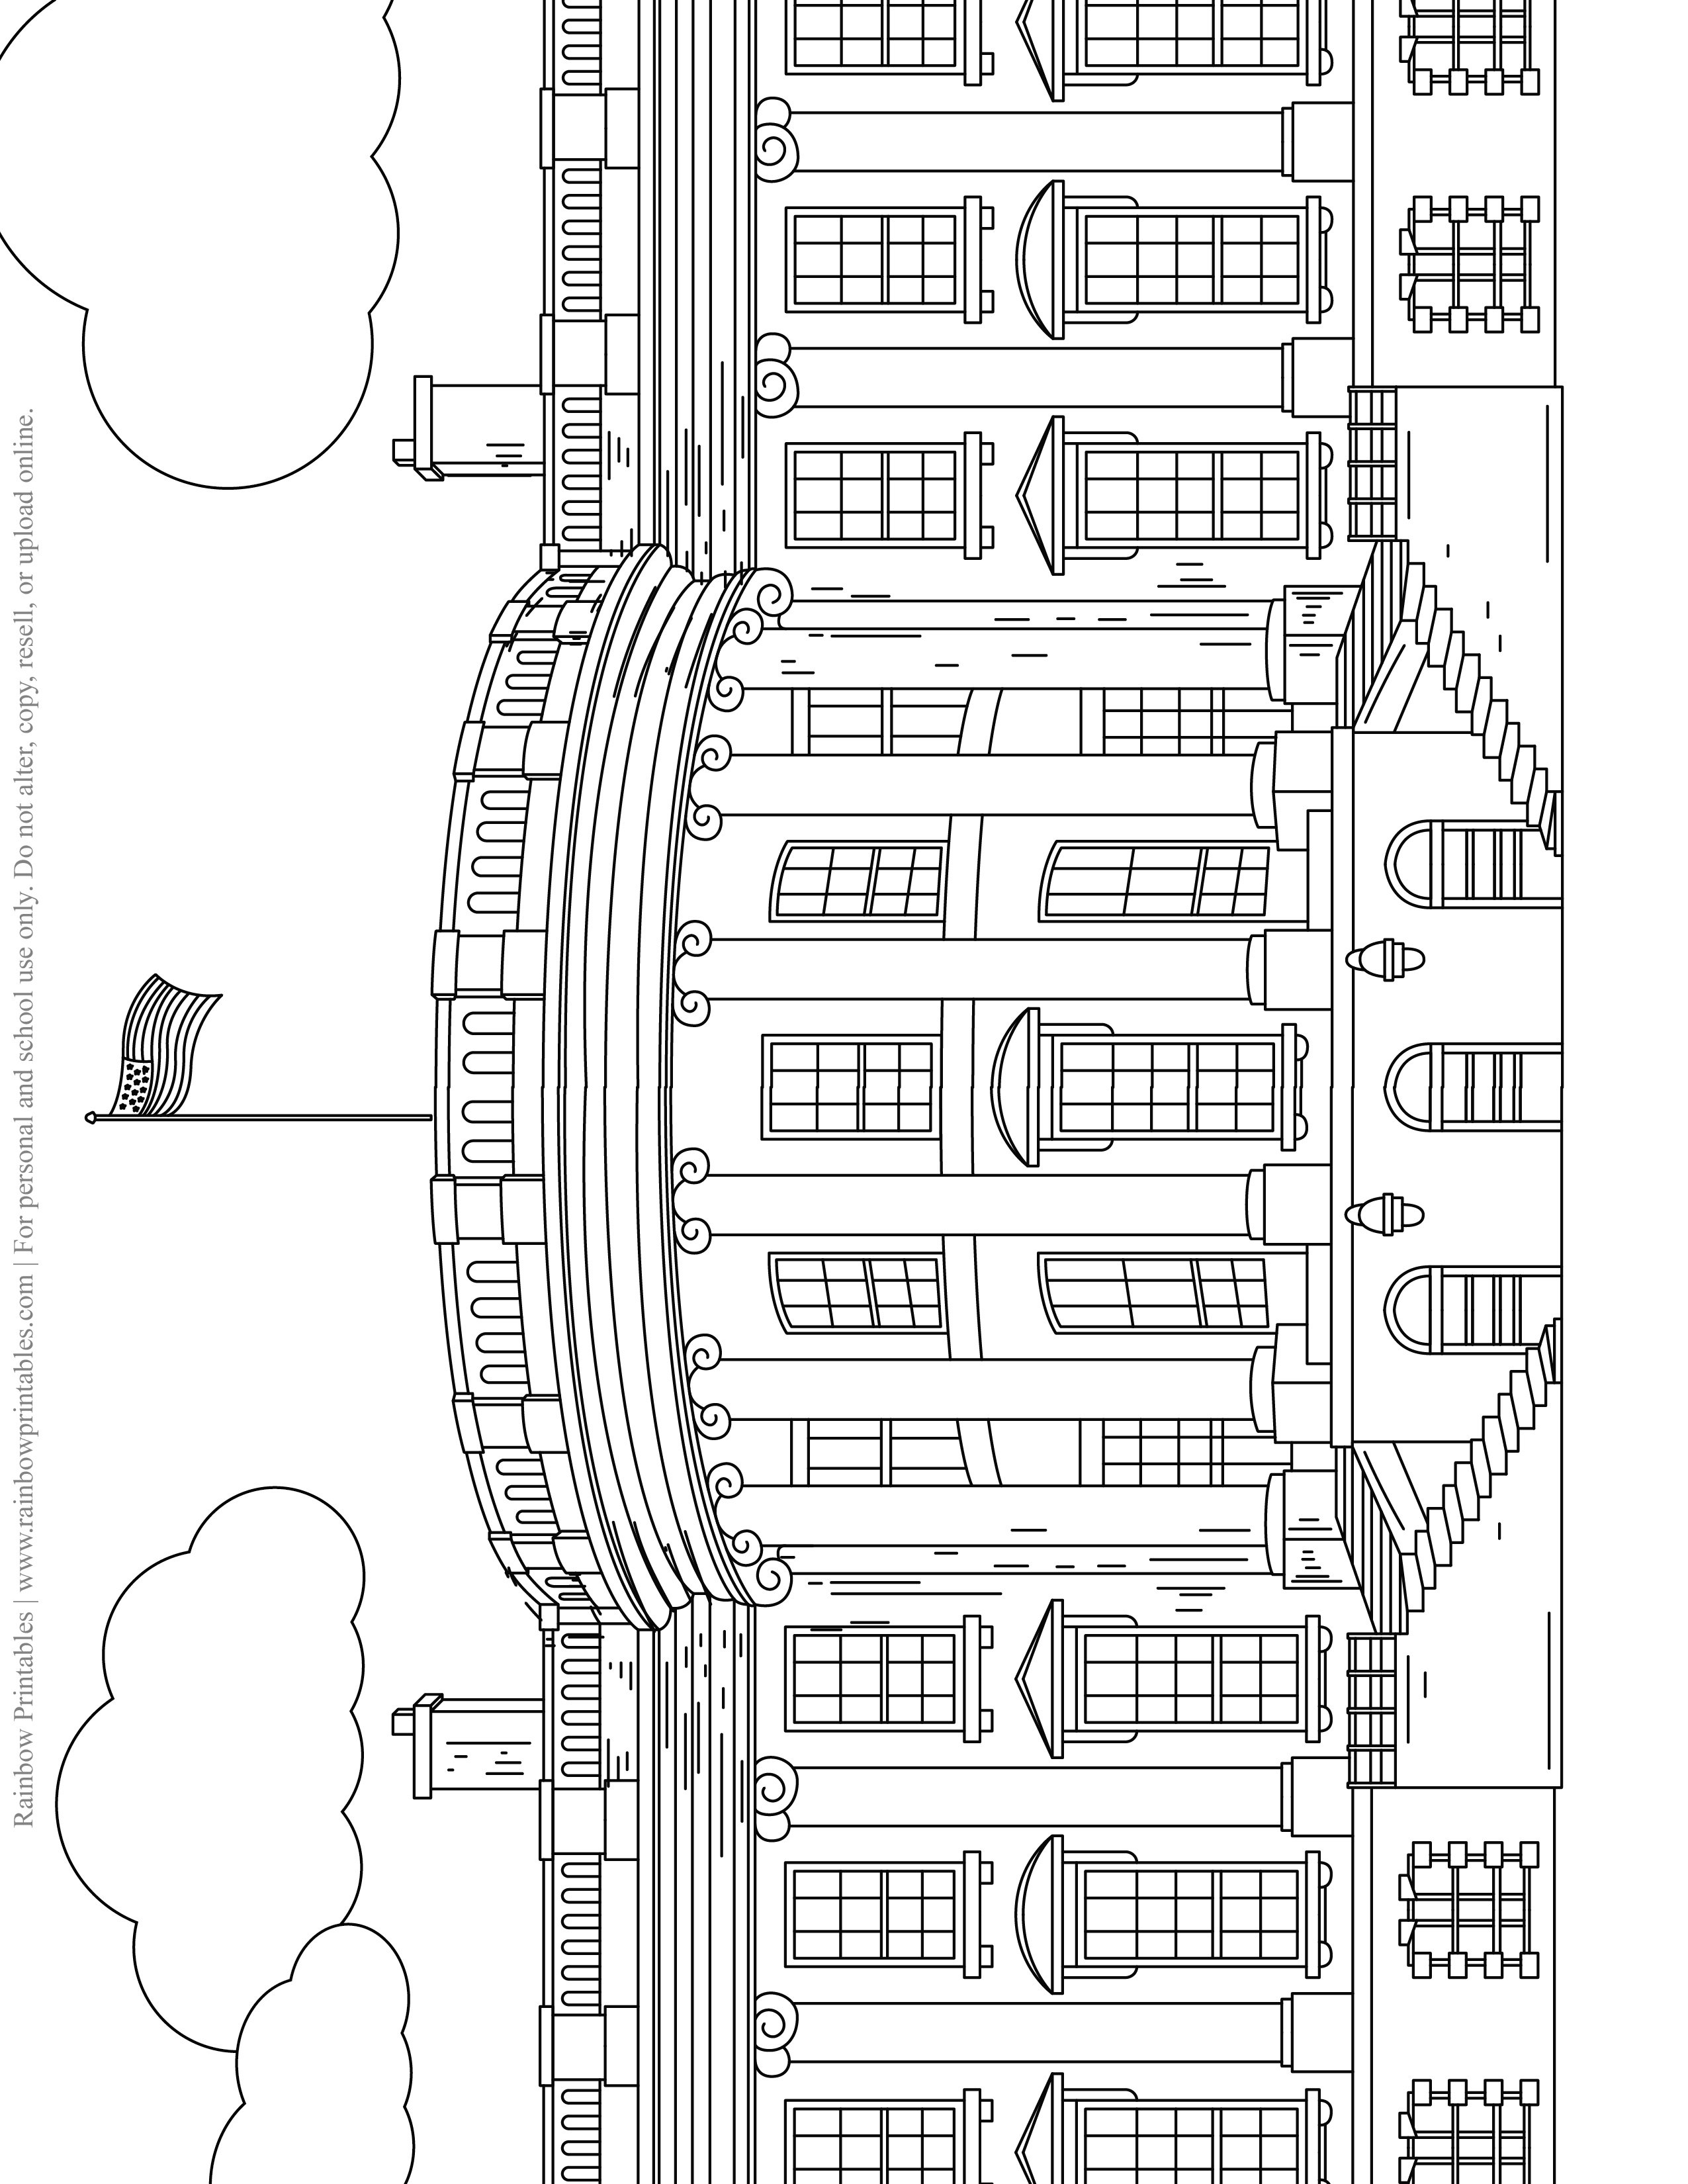 WHITE HOUSE Line Drawing Kids Patriotic July 4th Independence Day Printables for Children, Toddlers, America Coloring Pages, Activity for Preschool, Presidential Palace House